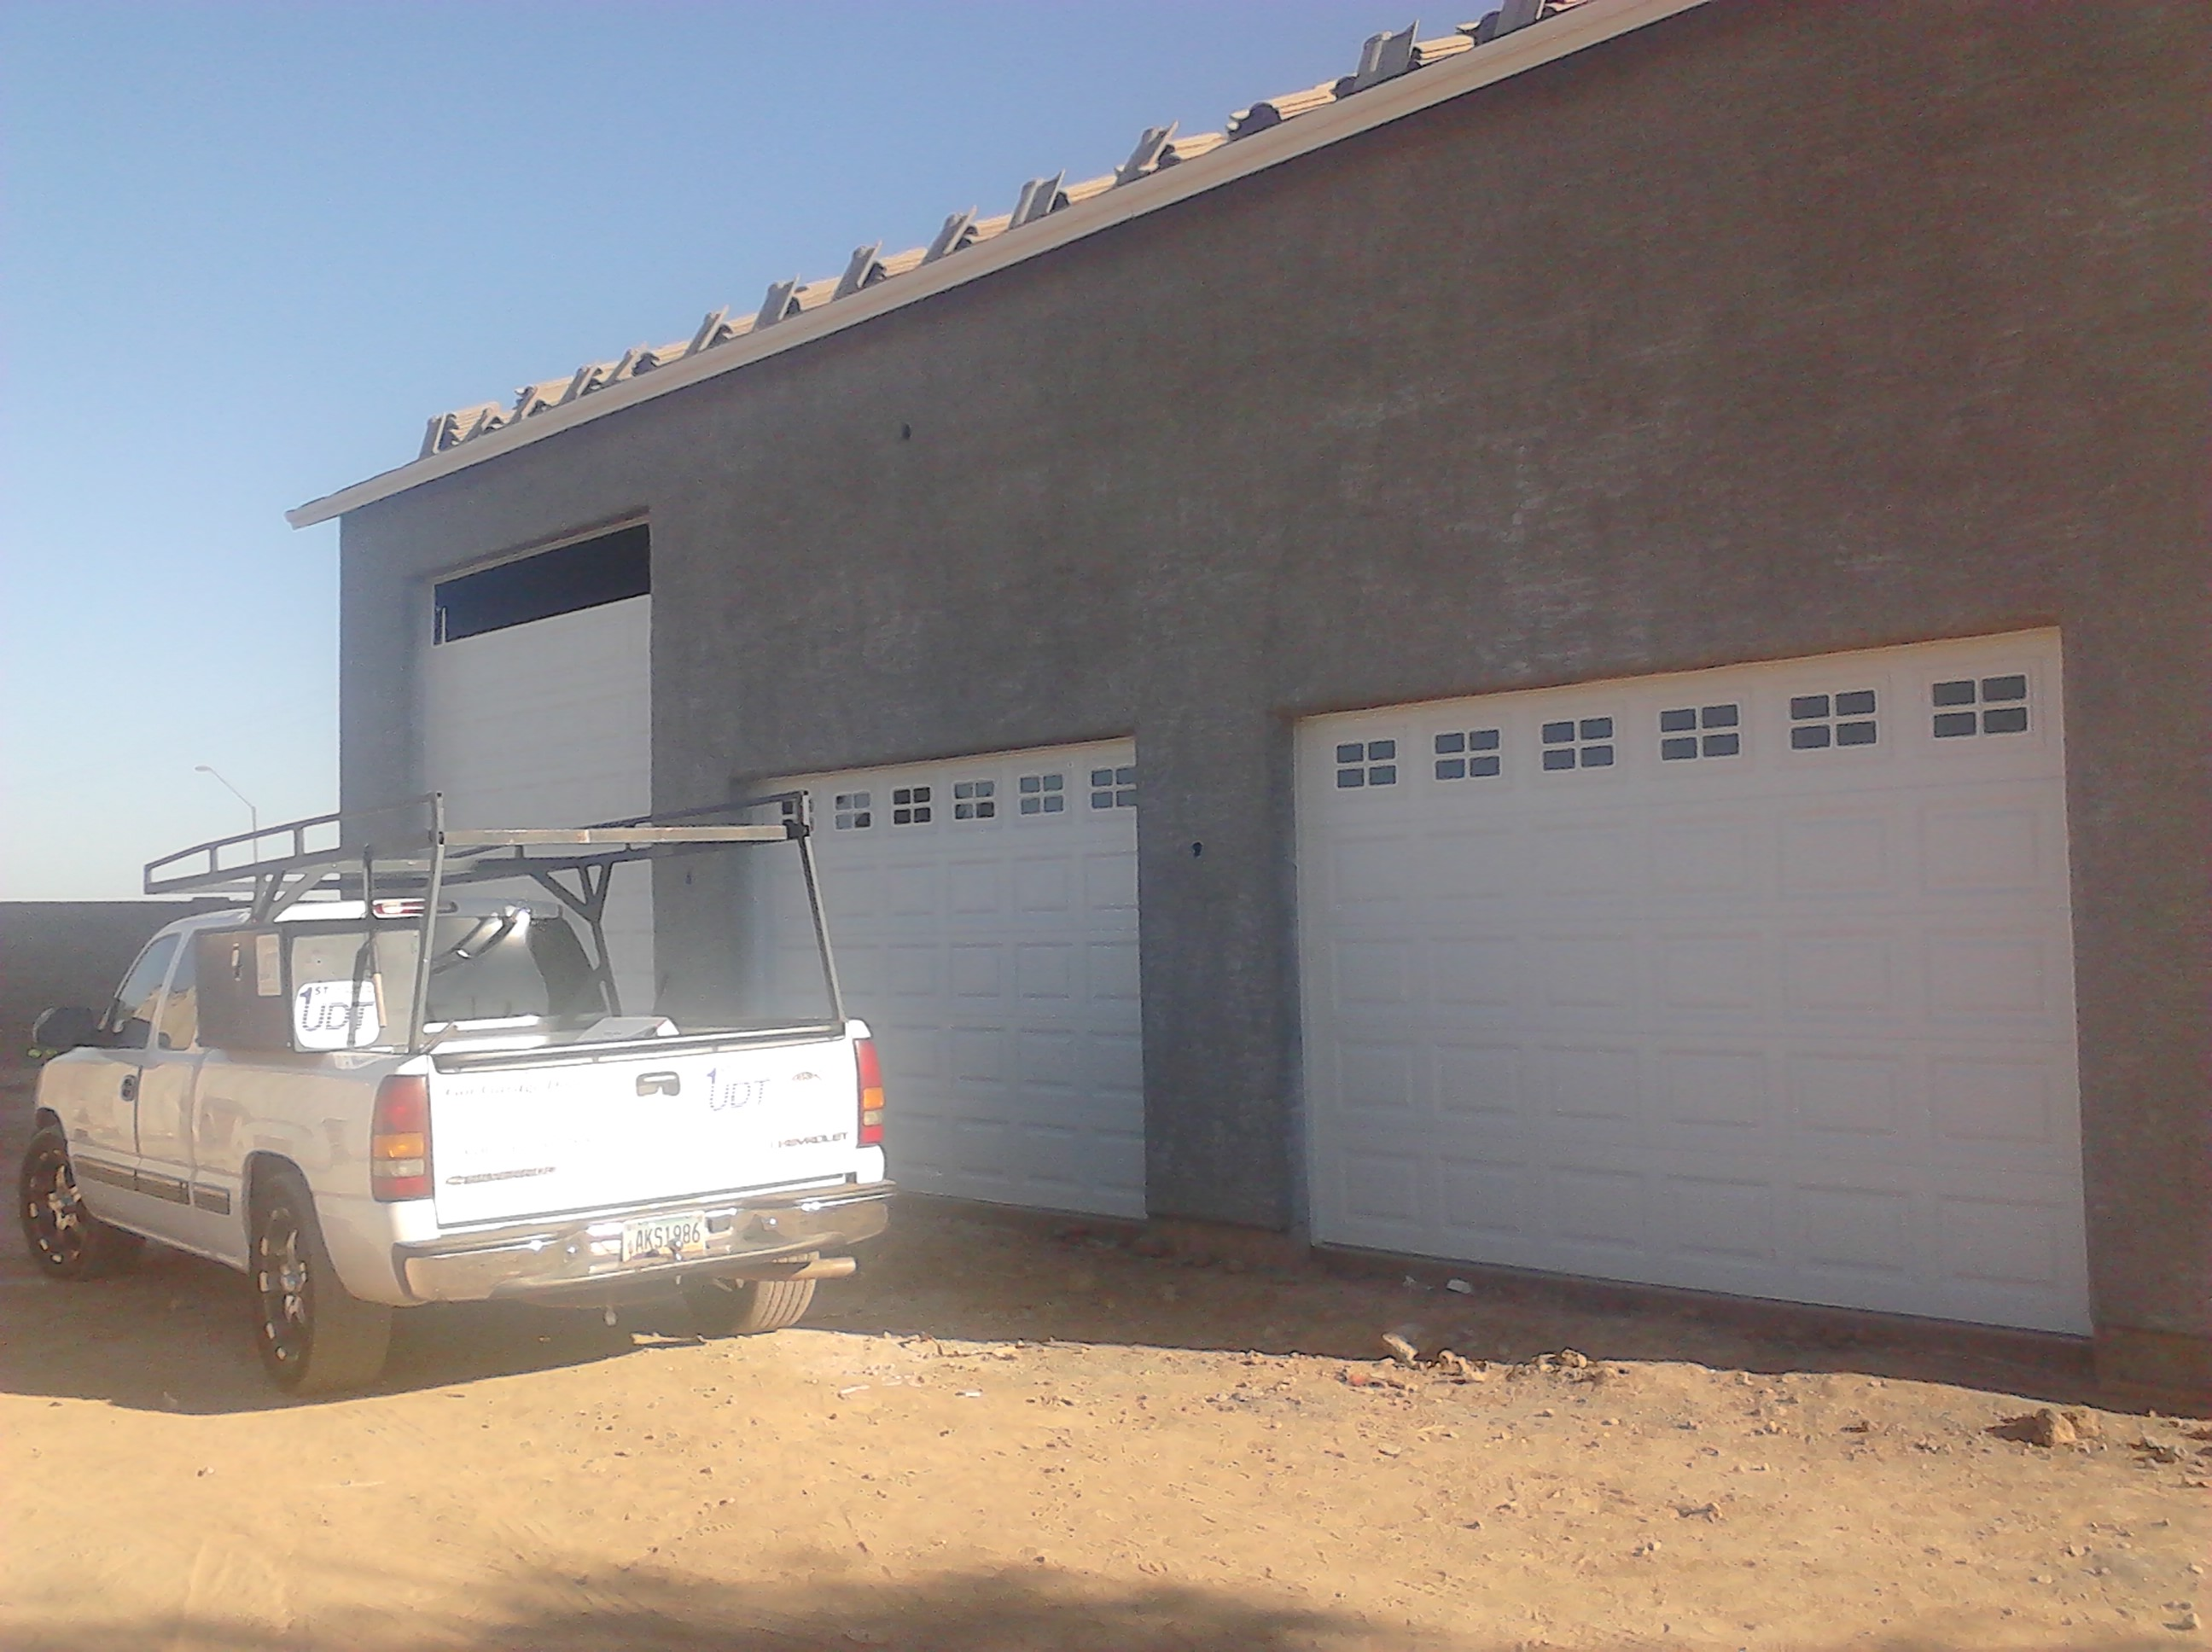 Udt grande gotgaragedoor llc for 12x14 garage door